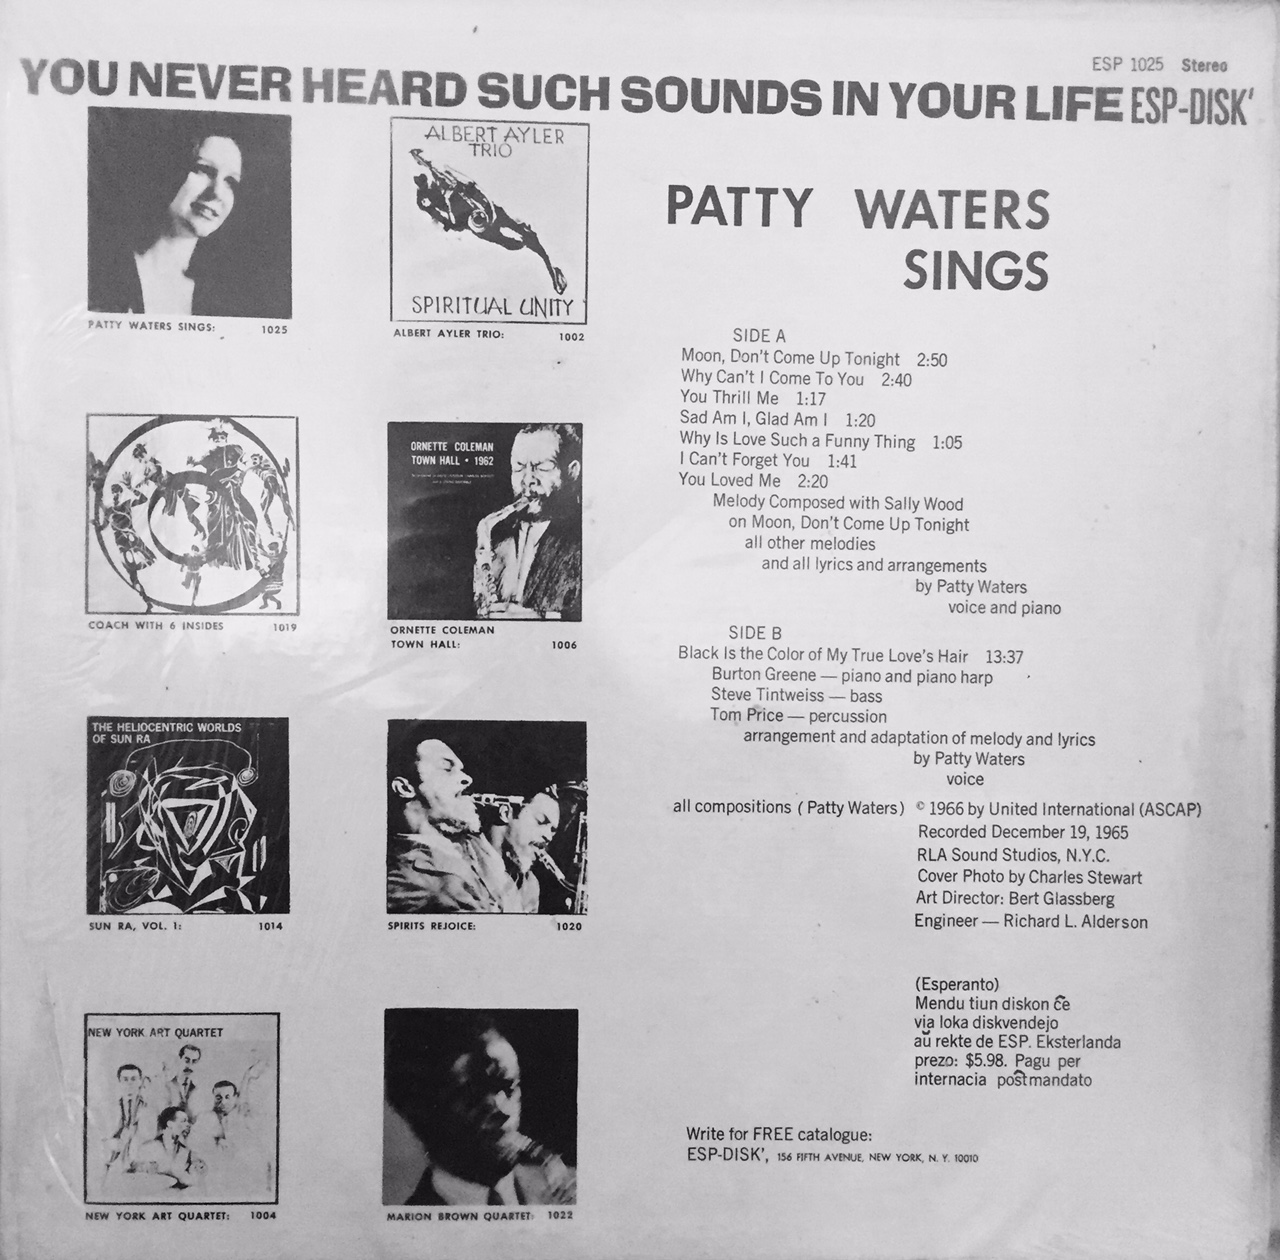 Patty Waters Sings Back Cover